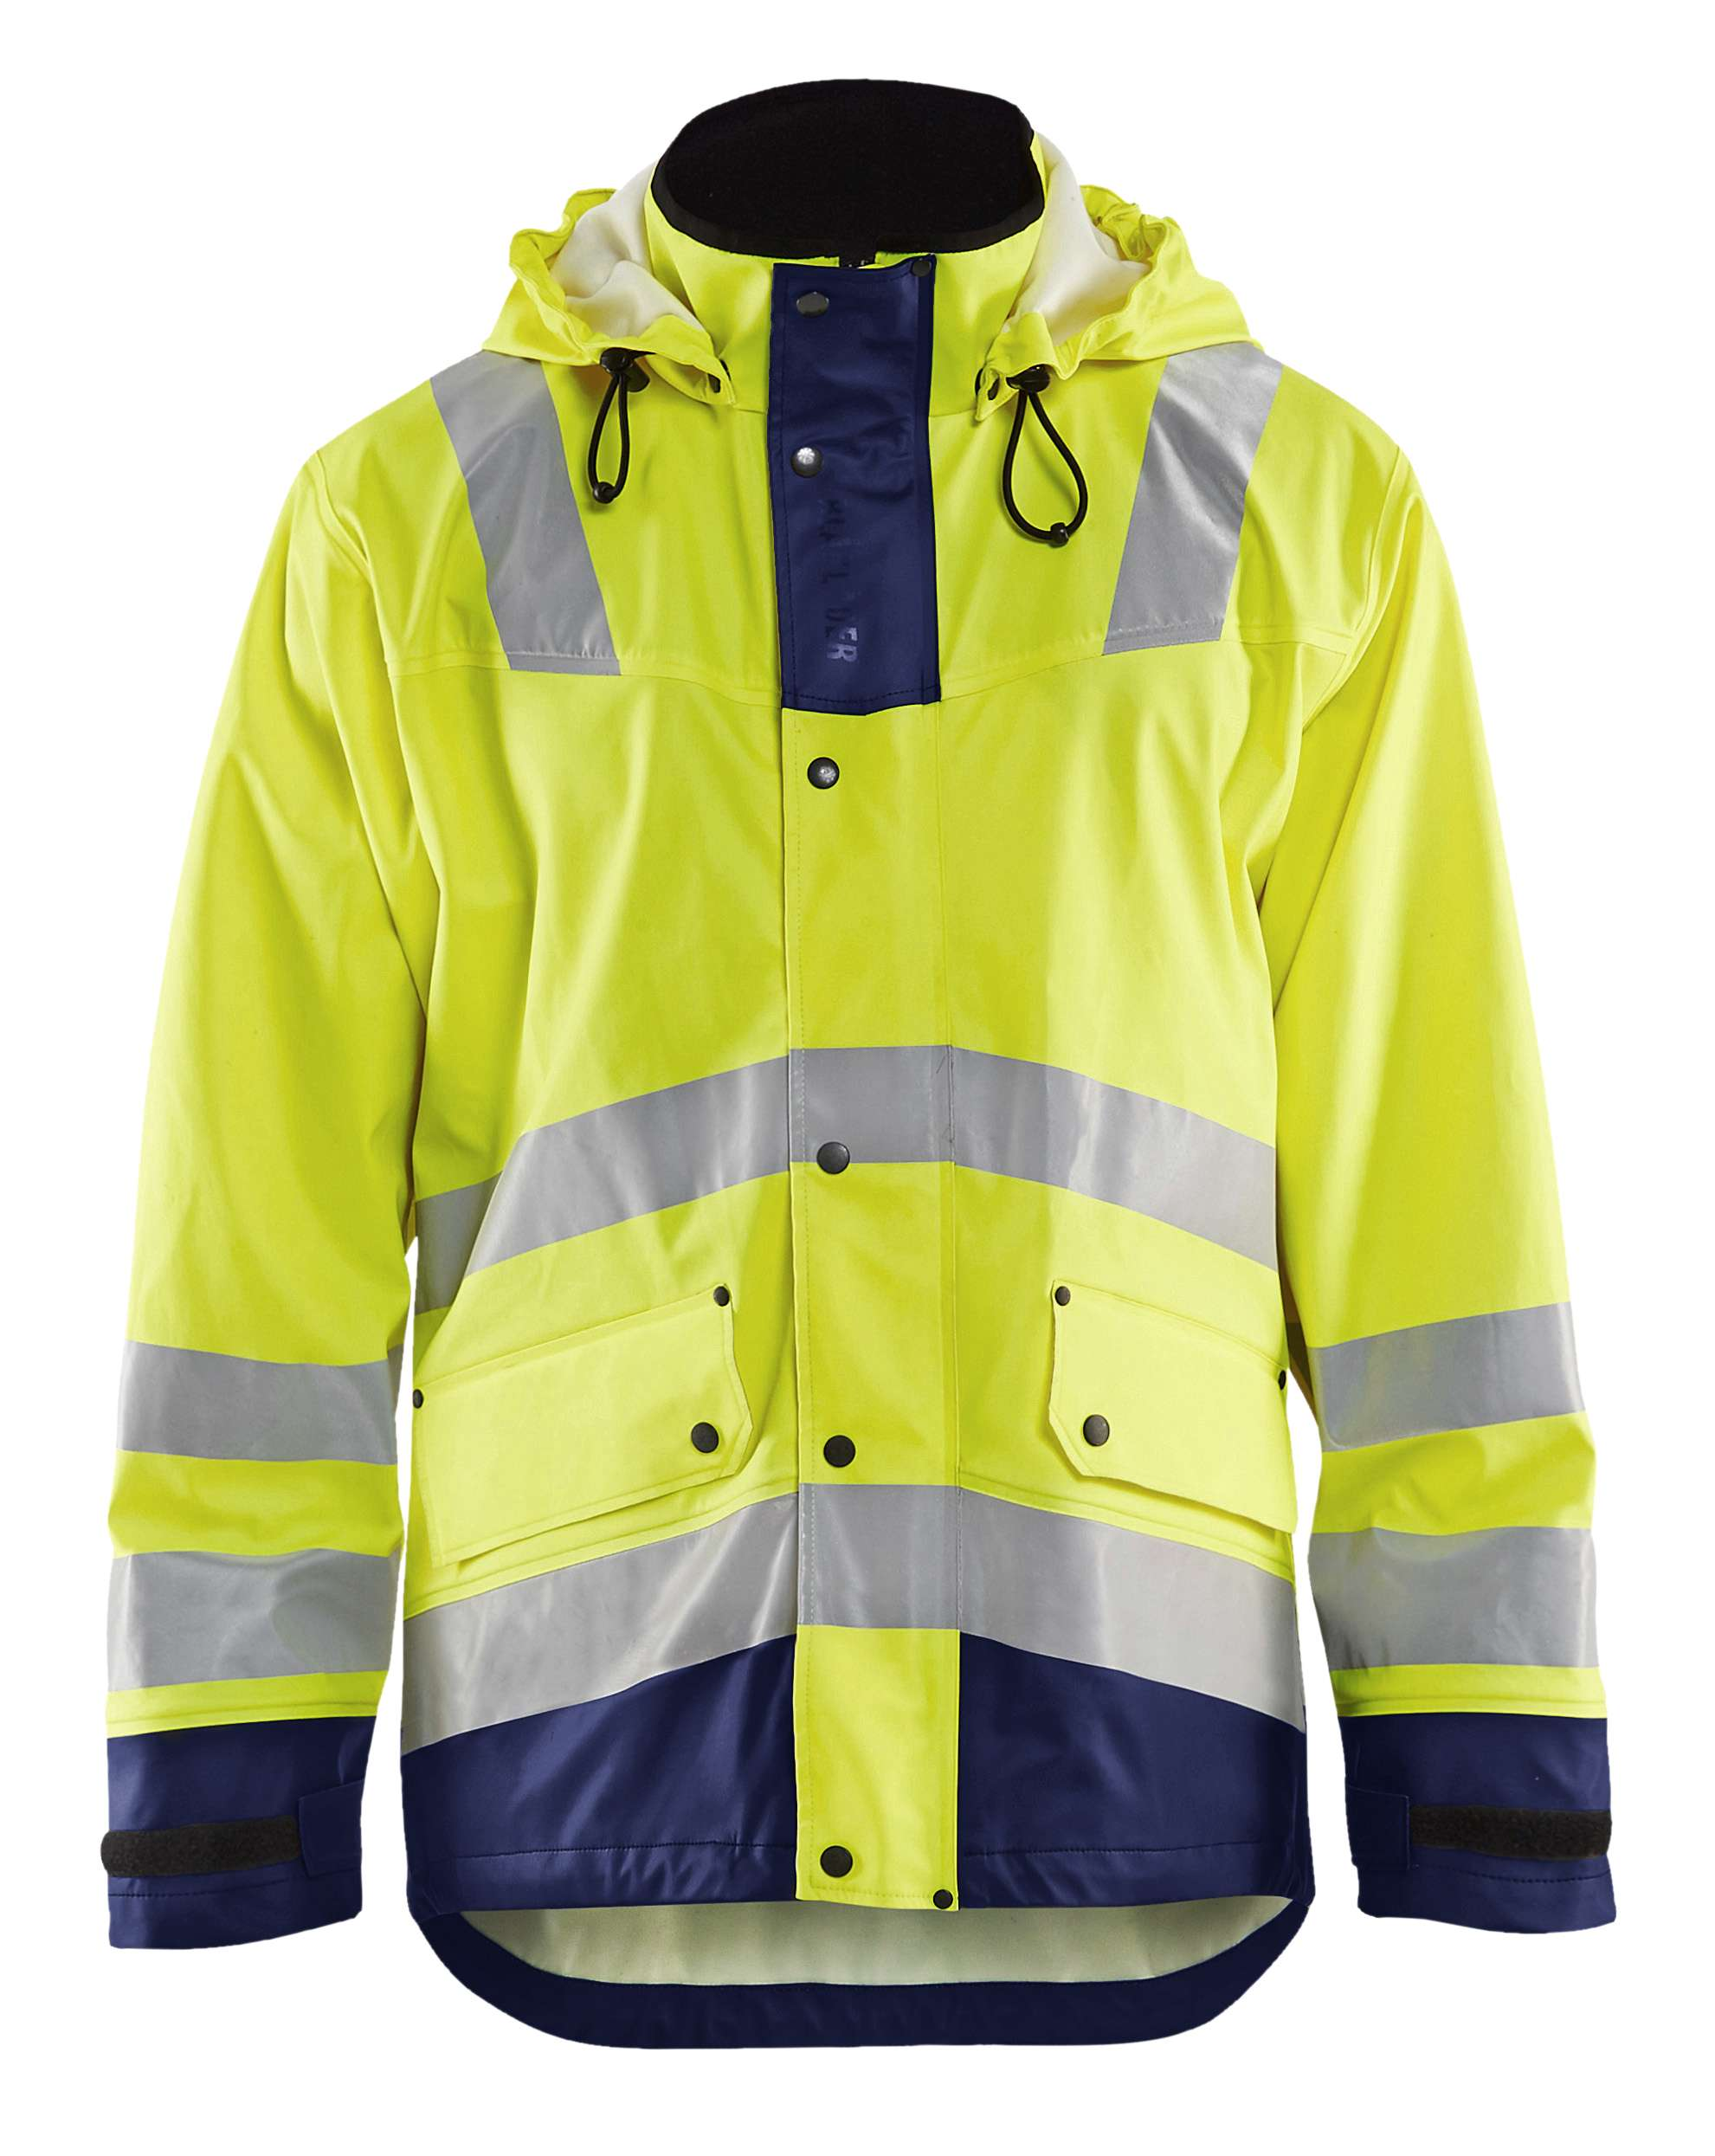 Blaklader Regenjacks 43022003 High Vis geel-marineblauw(3389)